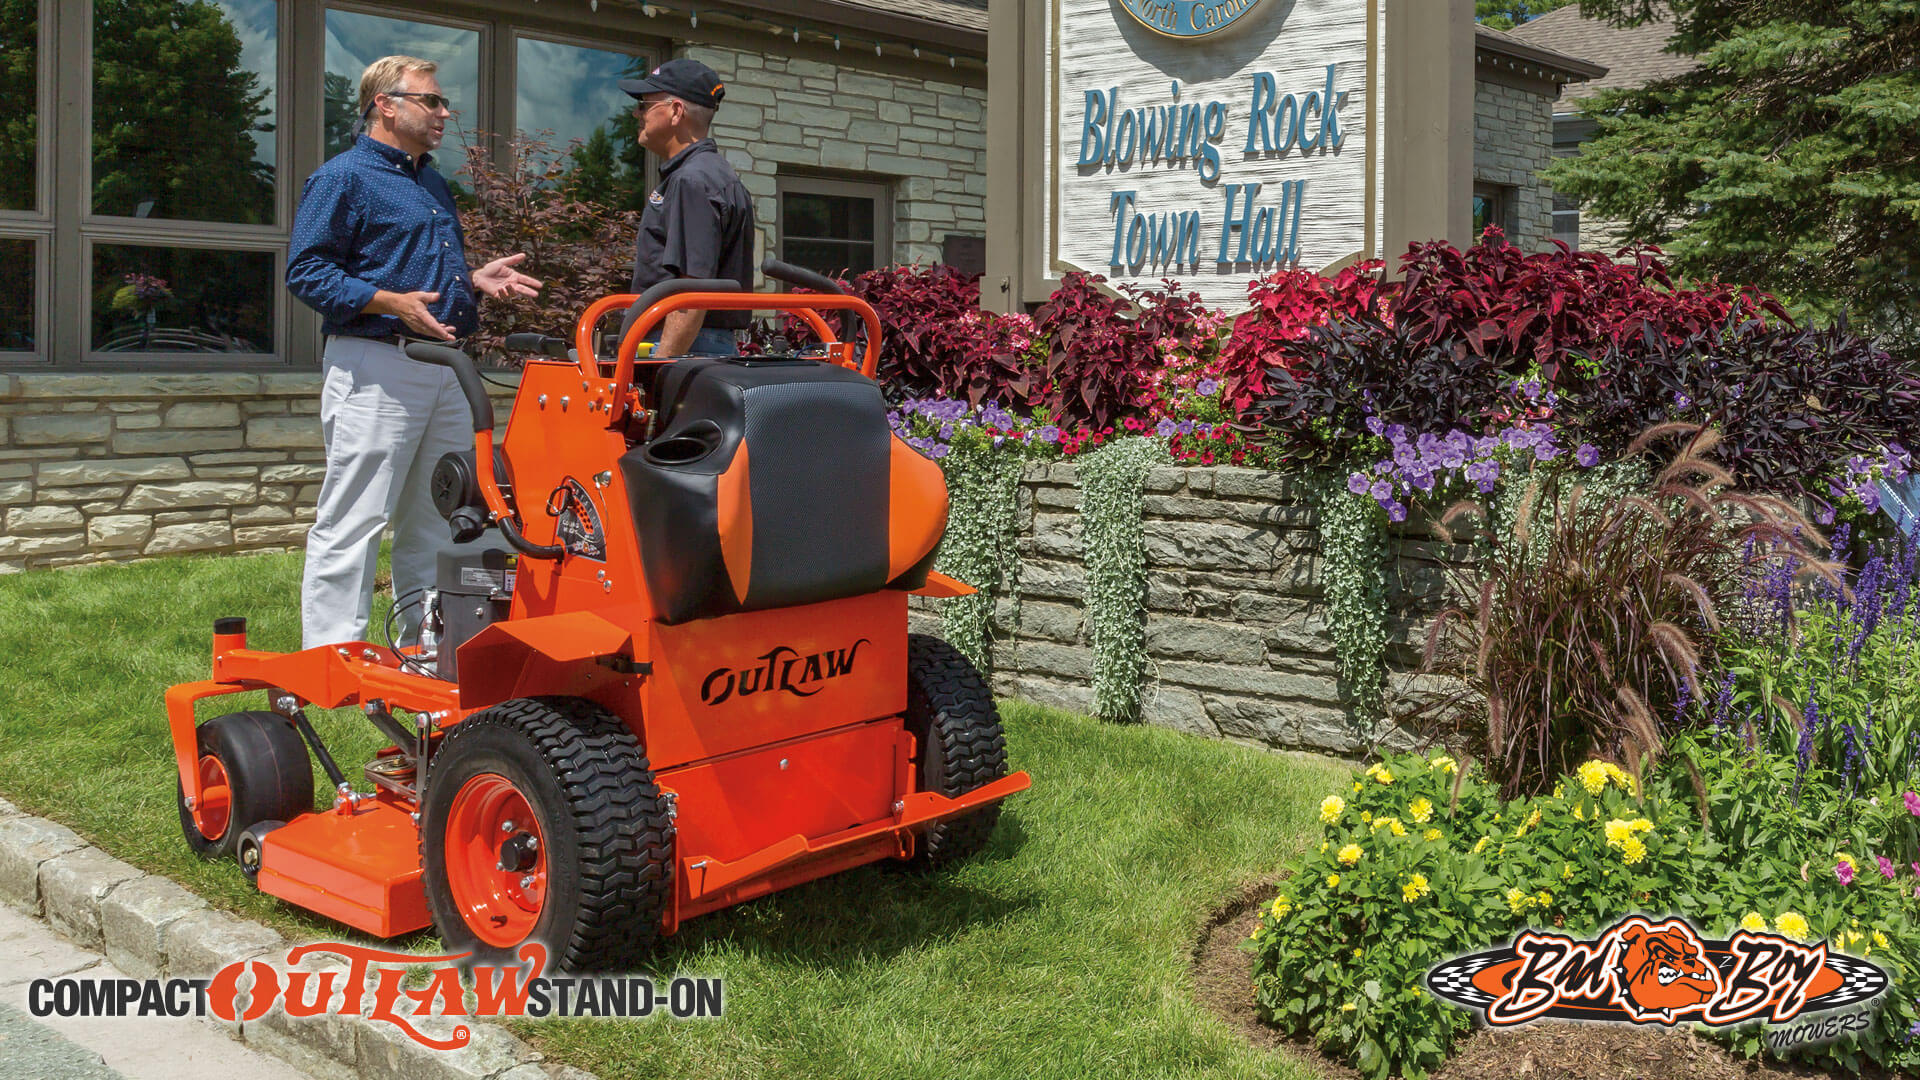 Outlaw Stand On Compact 2016 Zero Turn Mower